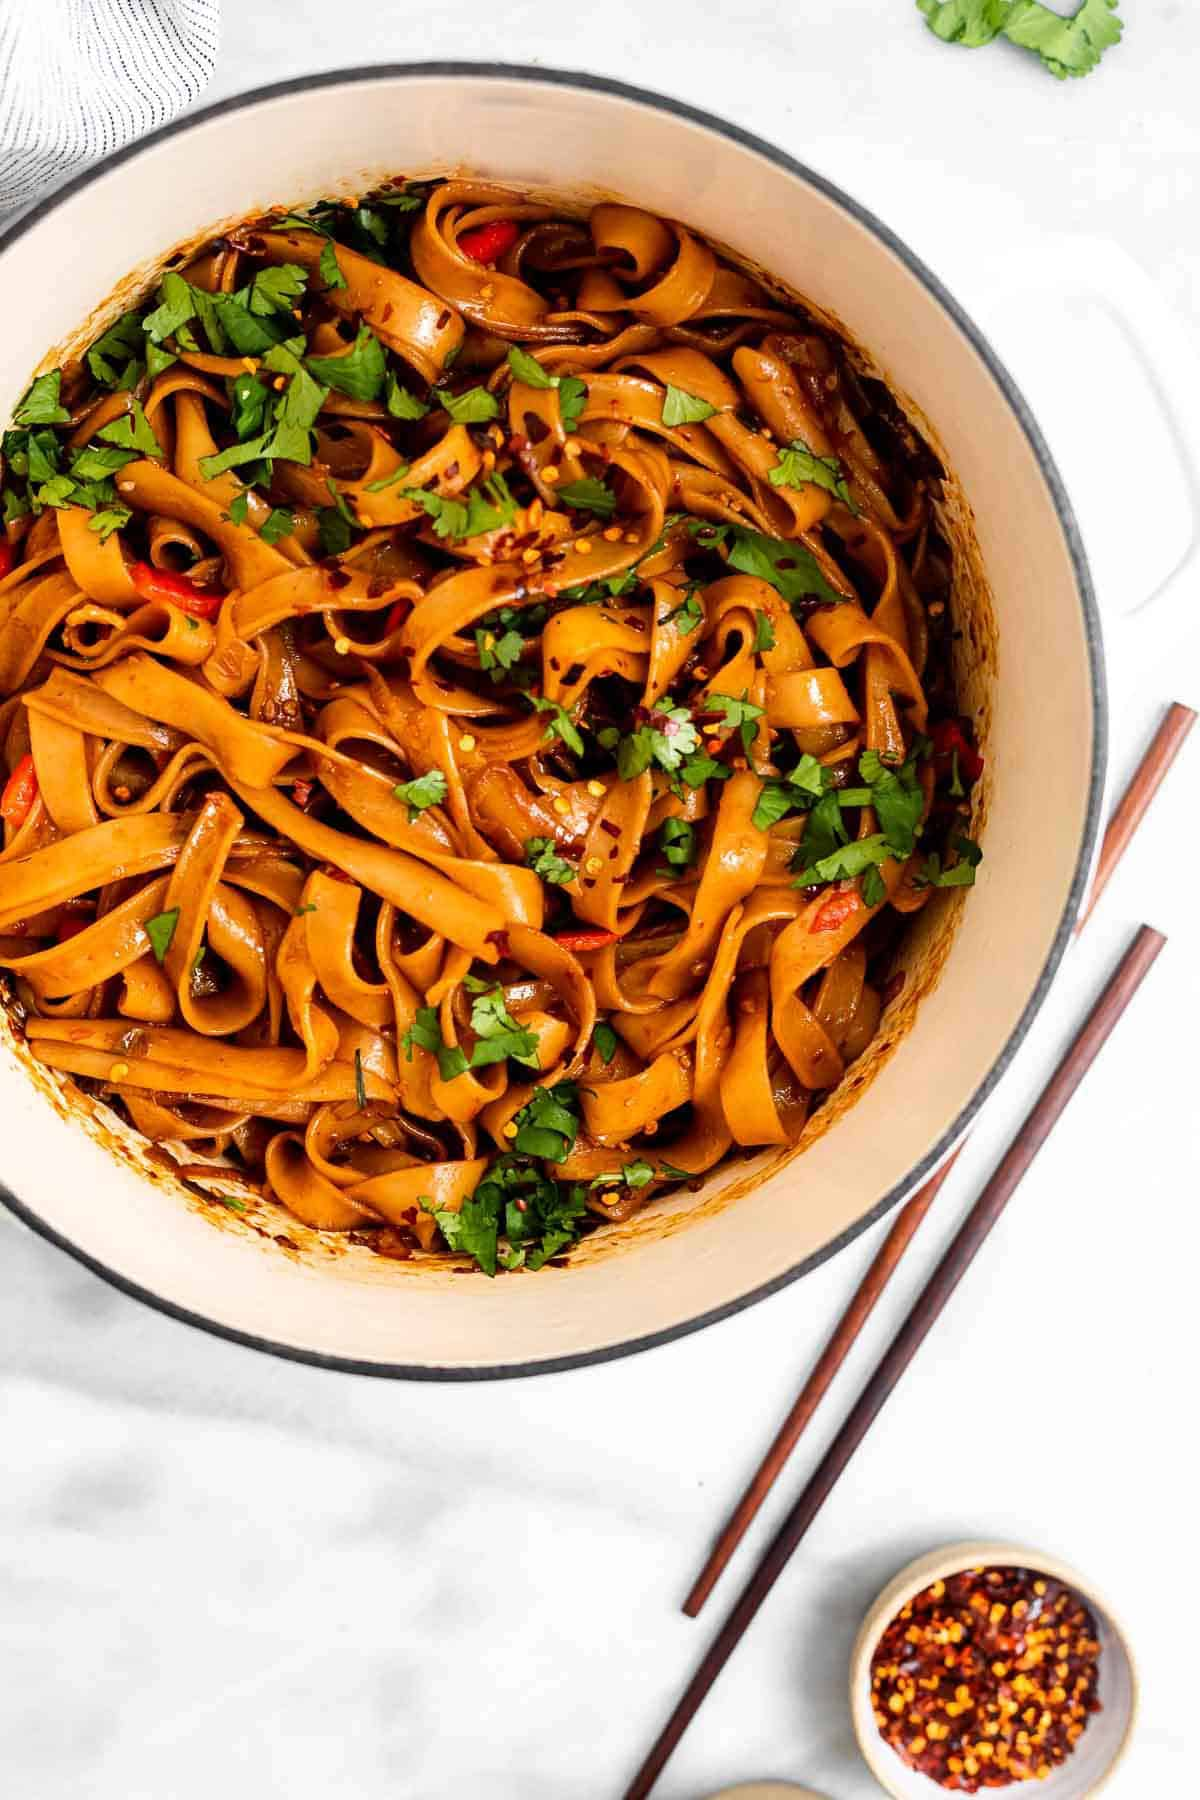 chili garlic noodles in a large white pot